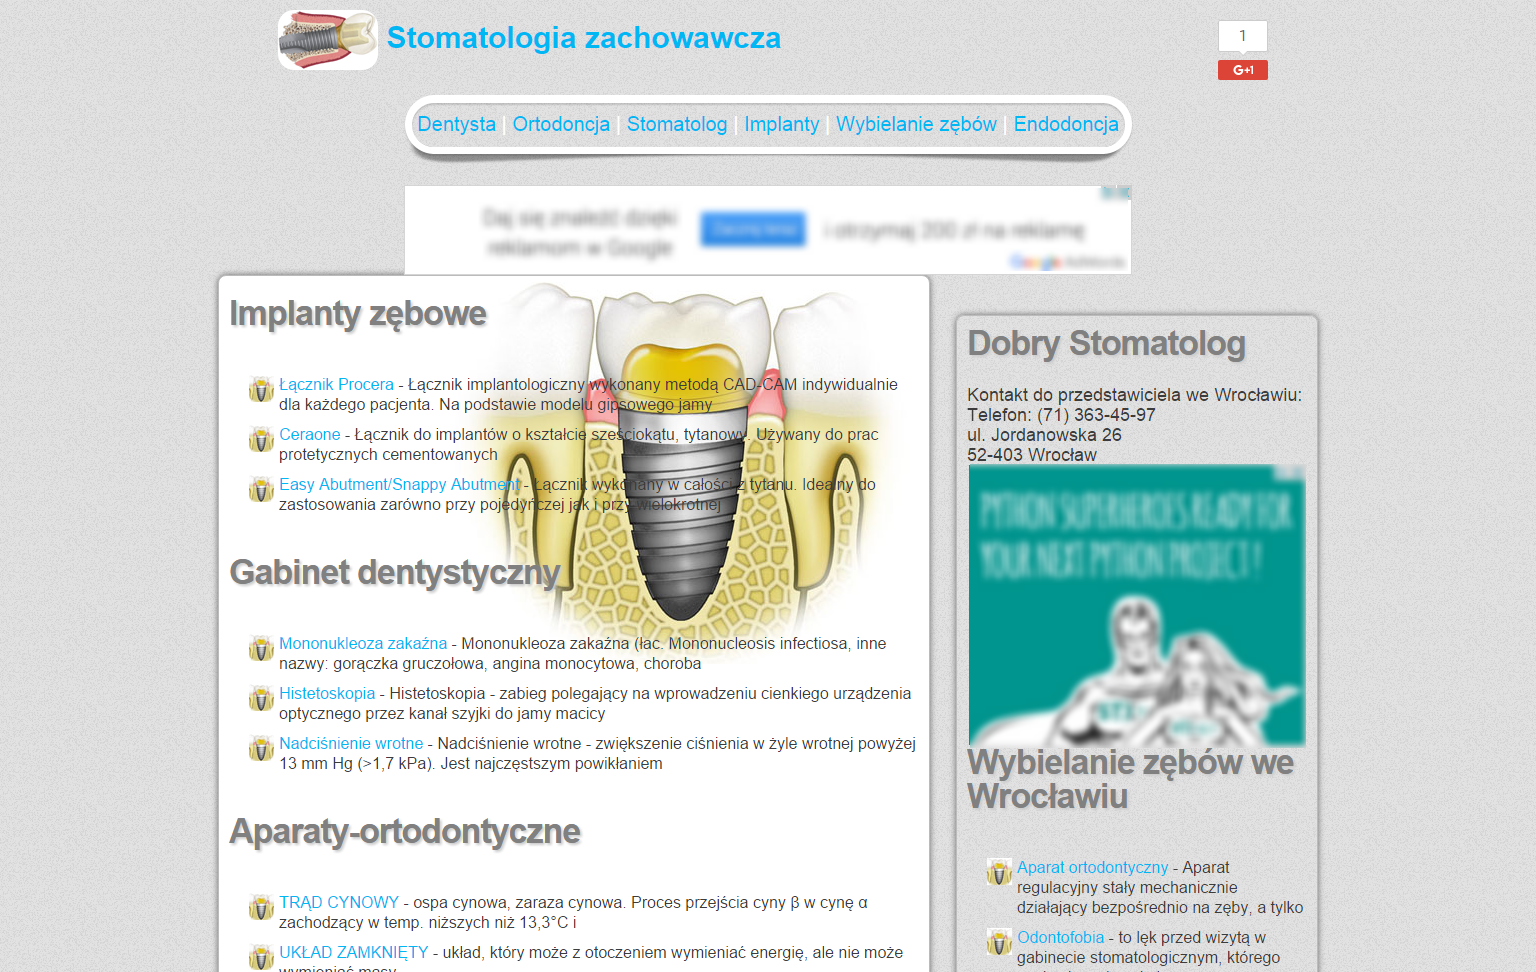 Project Stomatolog-Dentysta.com